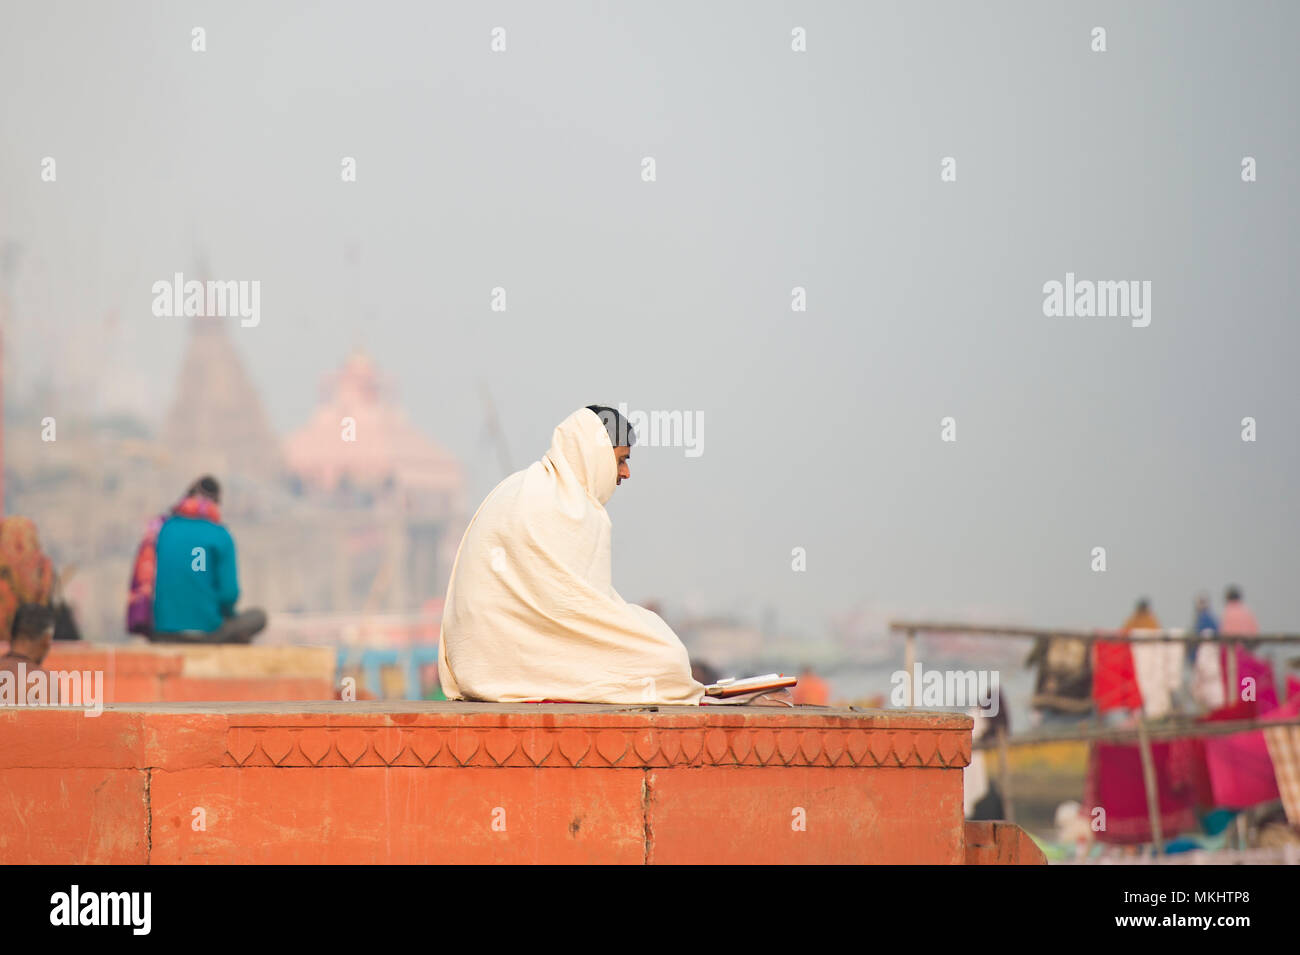 VARANASI - INDIA - 12 JANUARY 2018. Meditation, Holy man Sadhu meditating at the ghats of Varanasi, Banaras, Uttar Pradesh, India, Asia - Stock Image